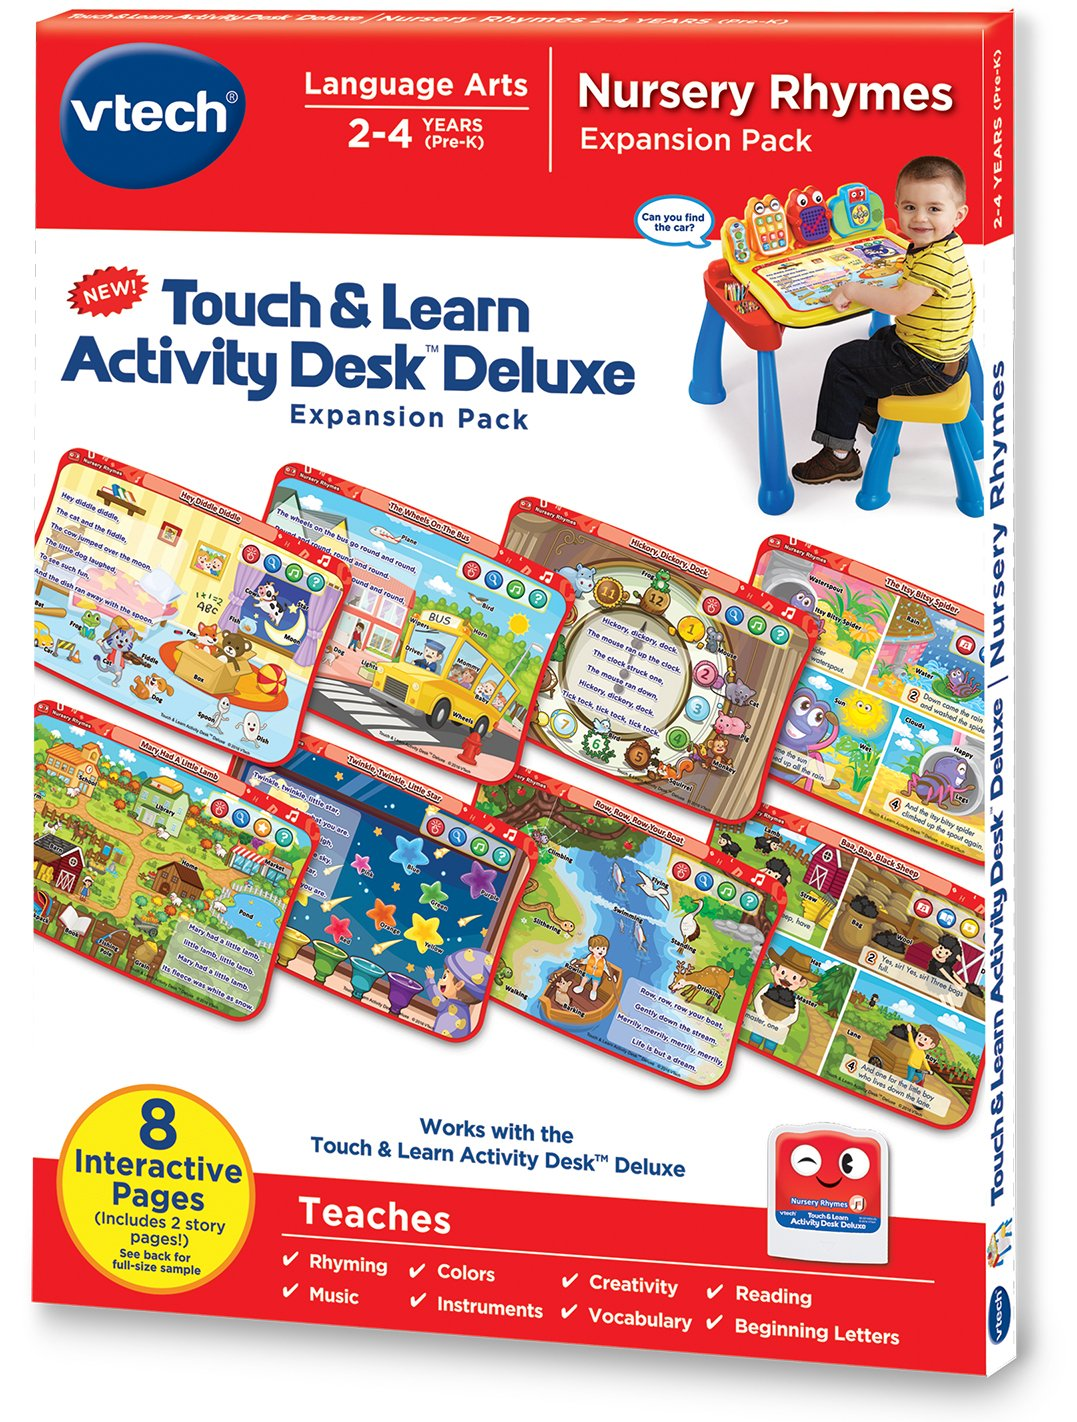 VTech Touch & Learn Nursery Rhymes Activity Pack (English Version) V Tech 80-221000